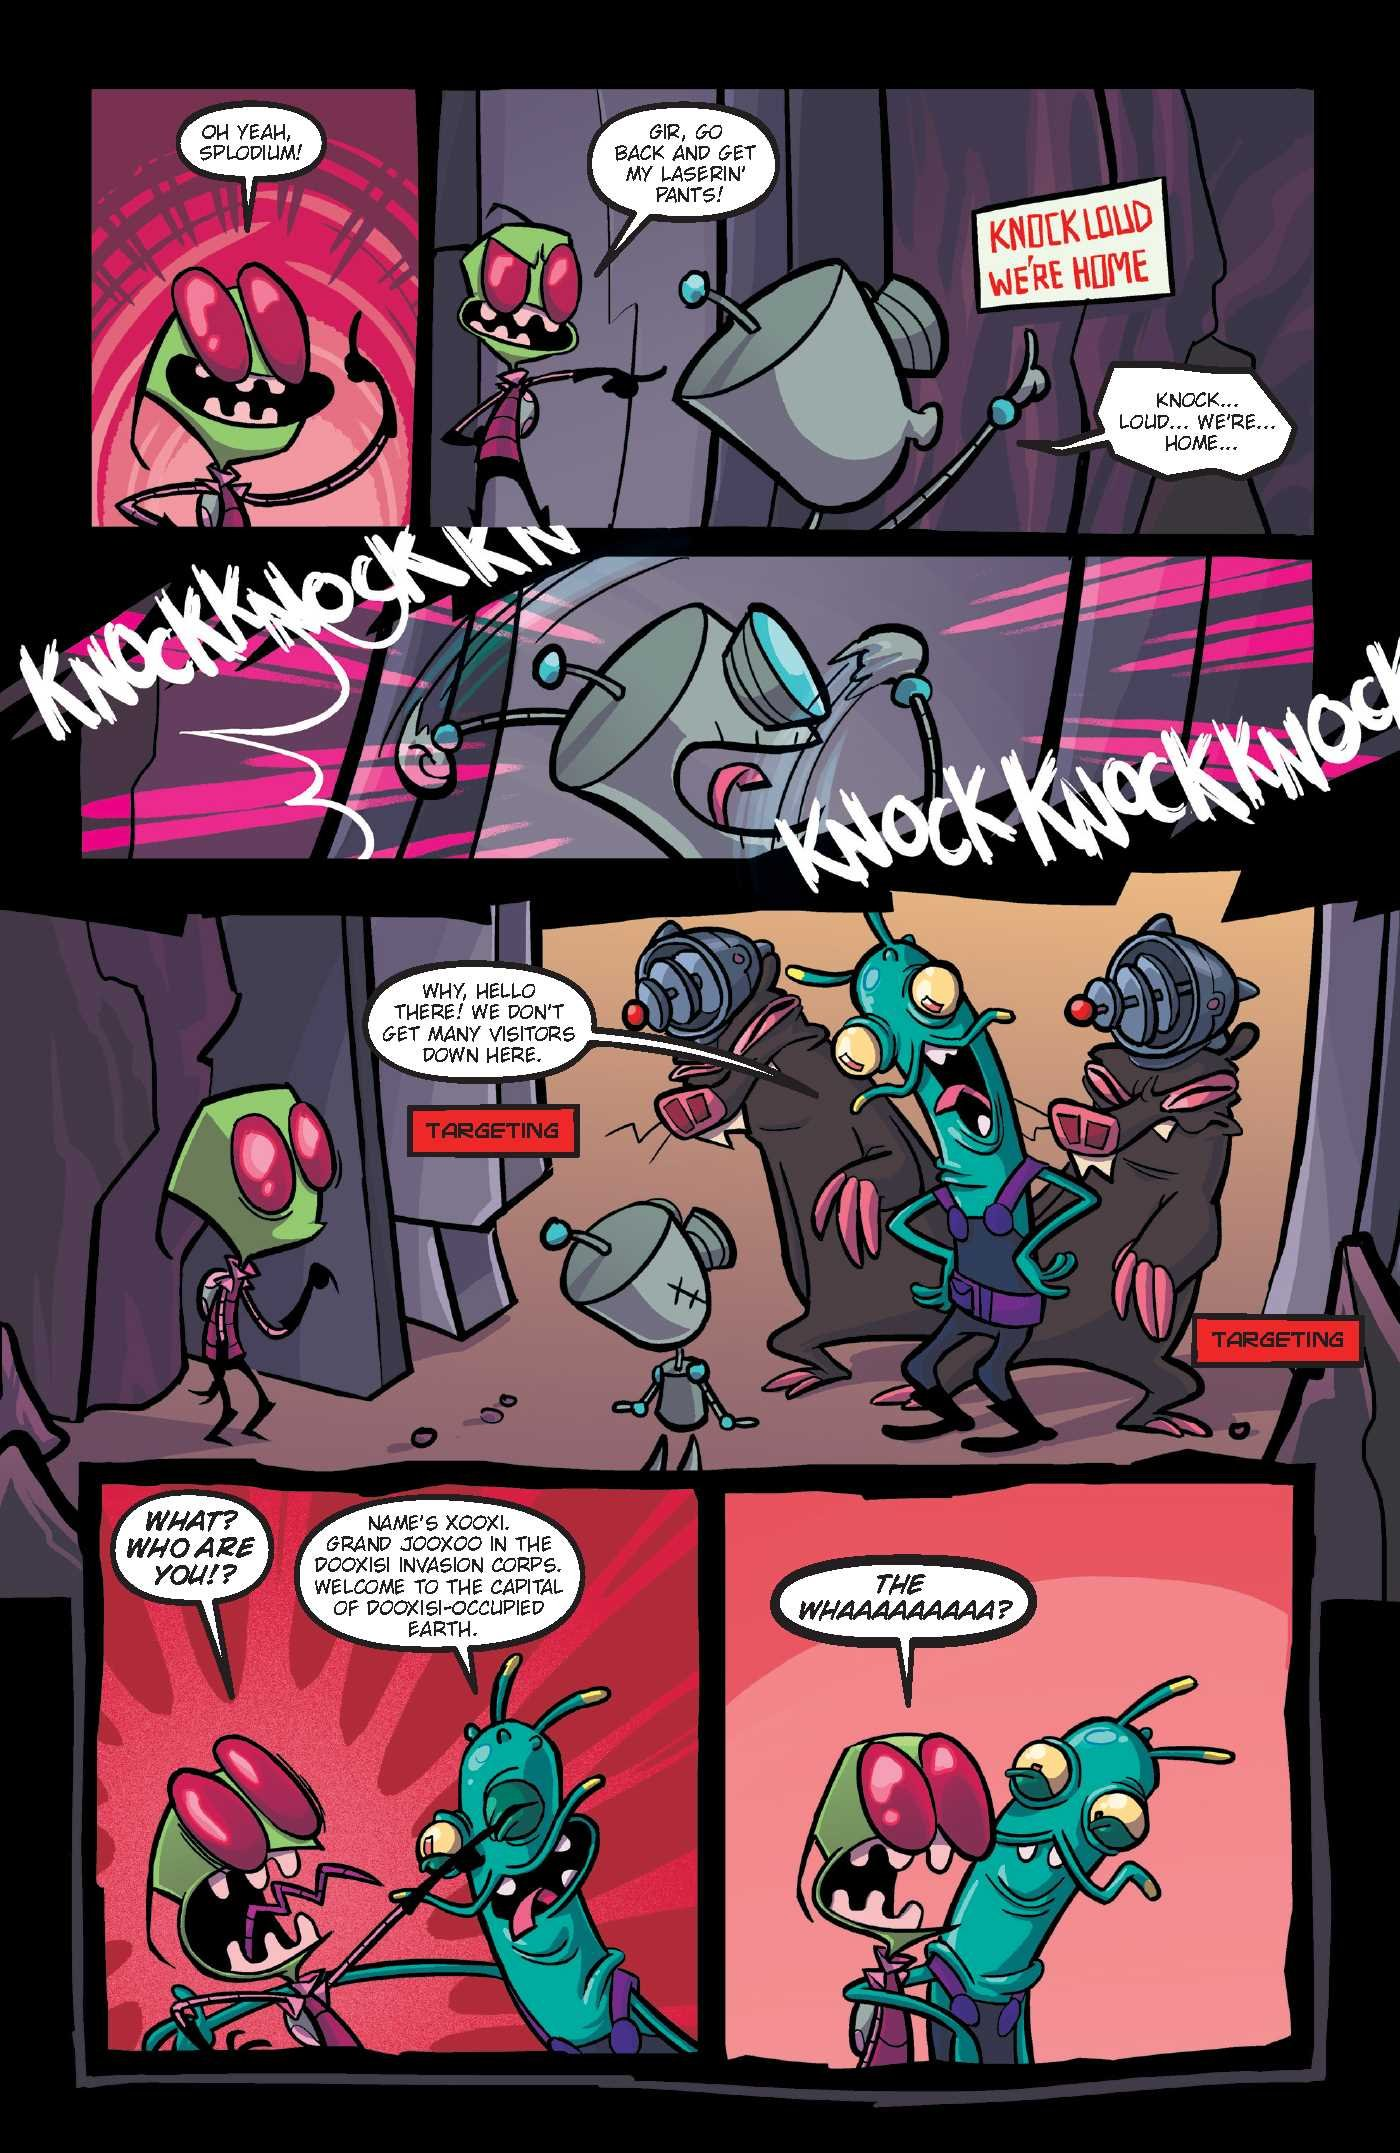 Invader Zim vol 6 review